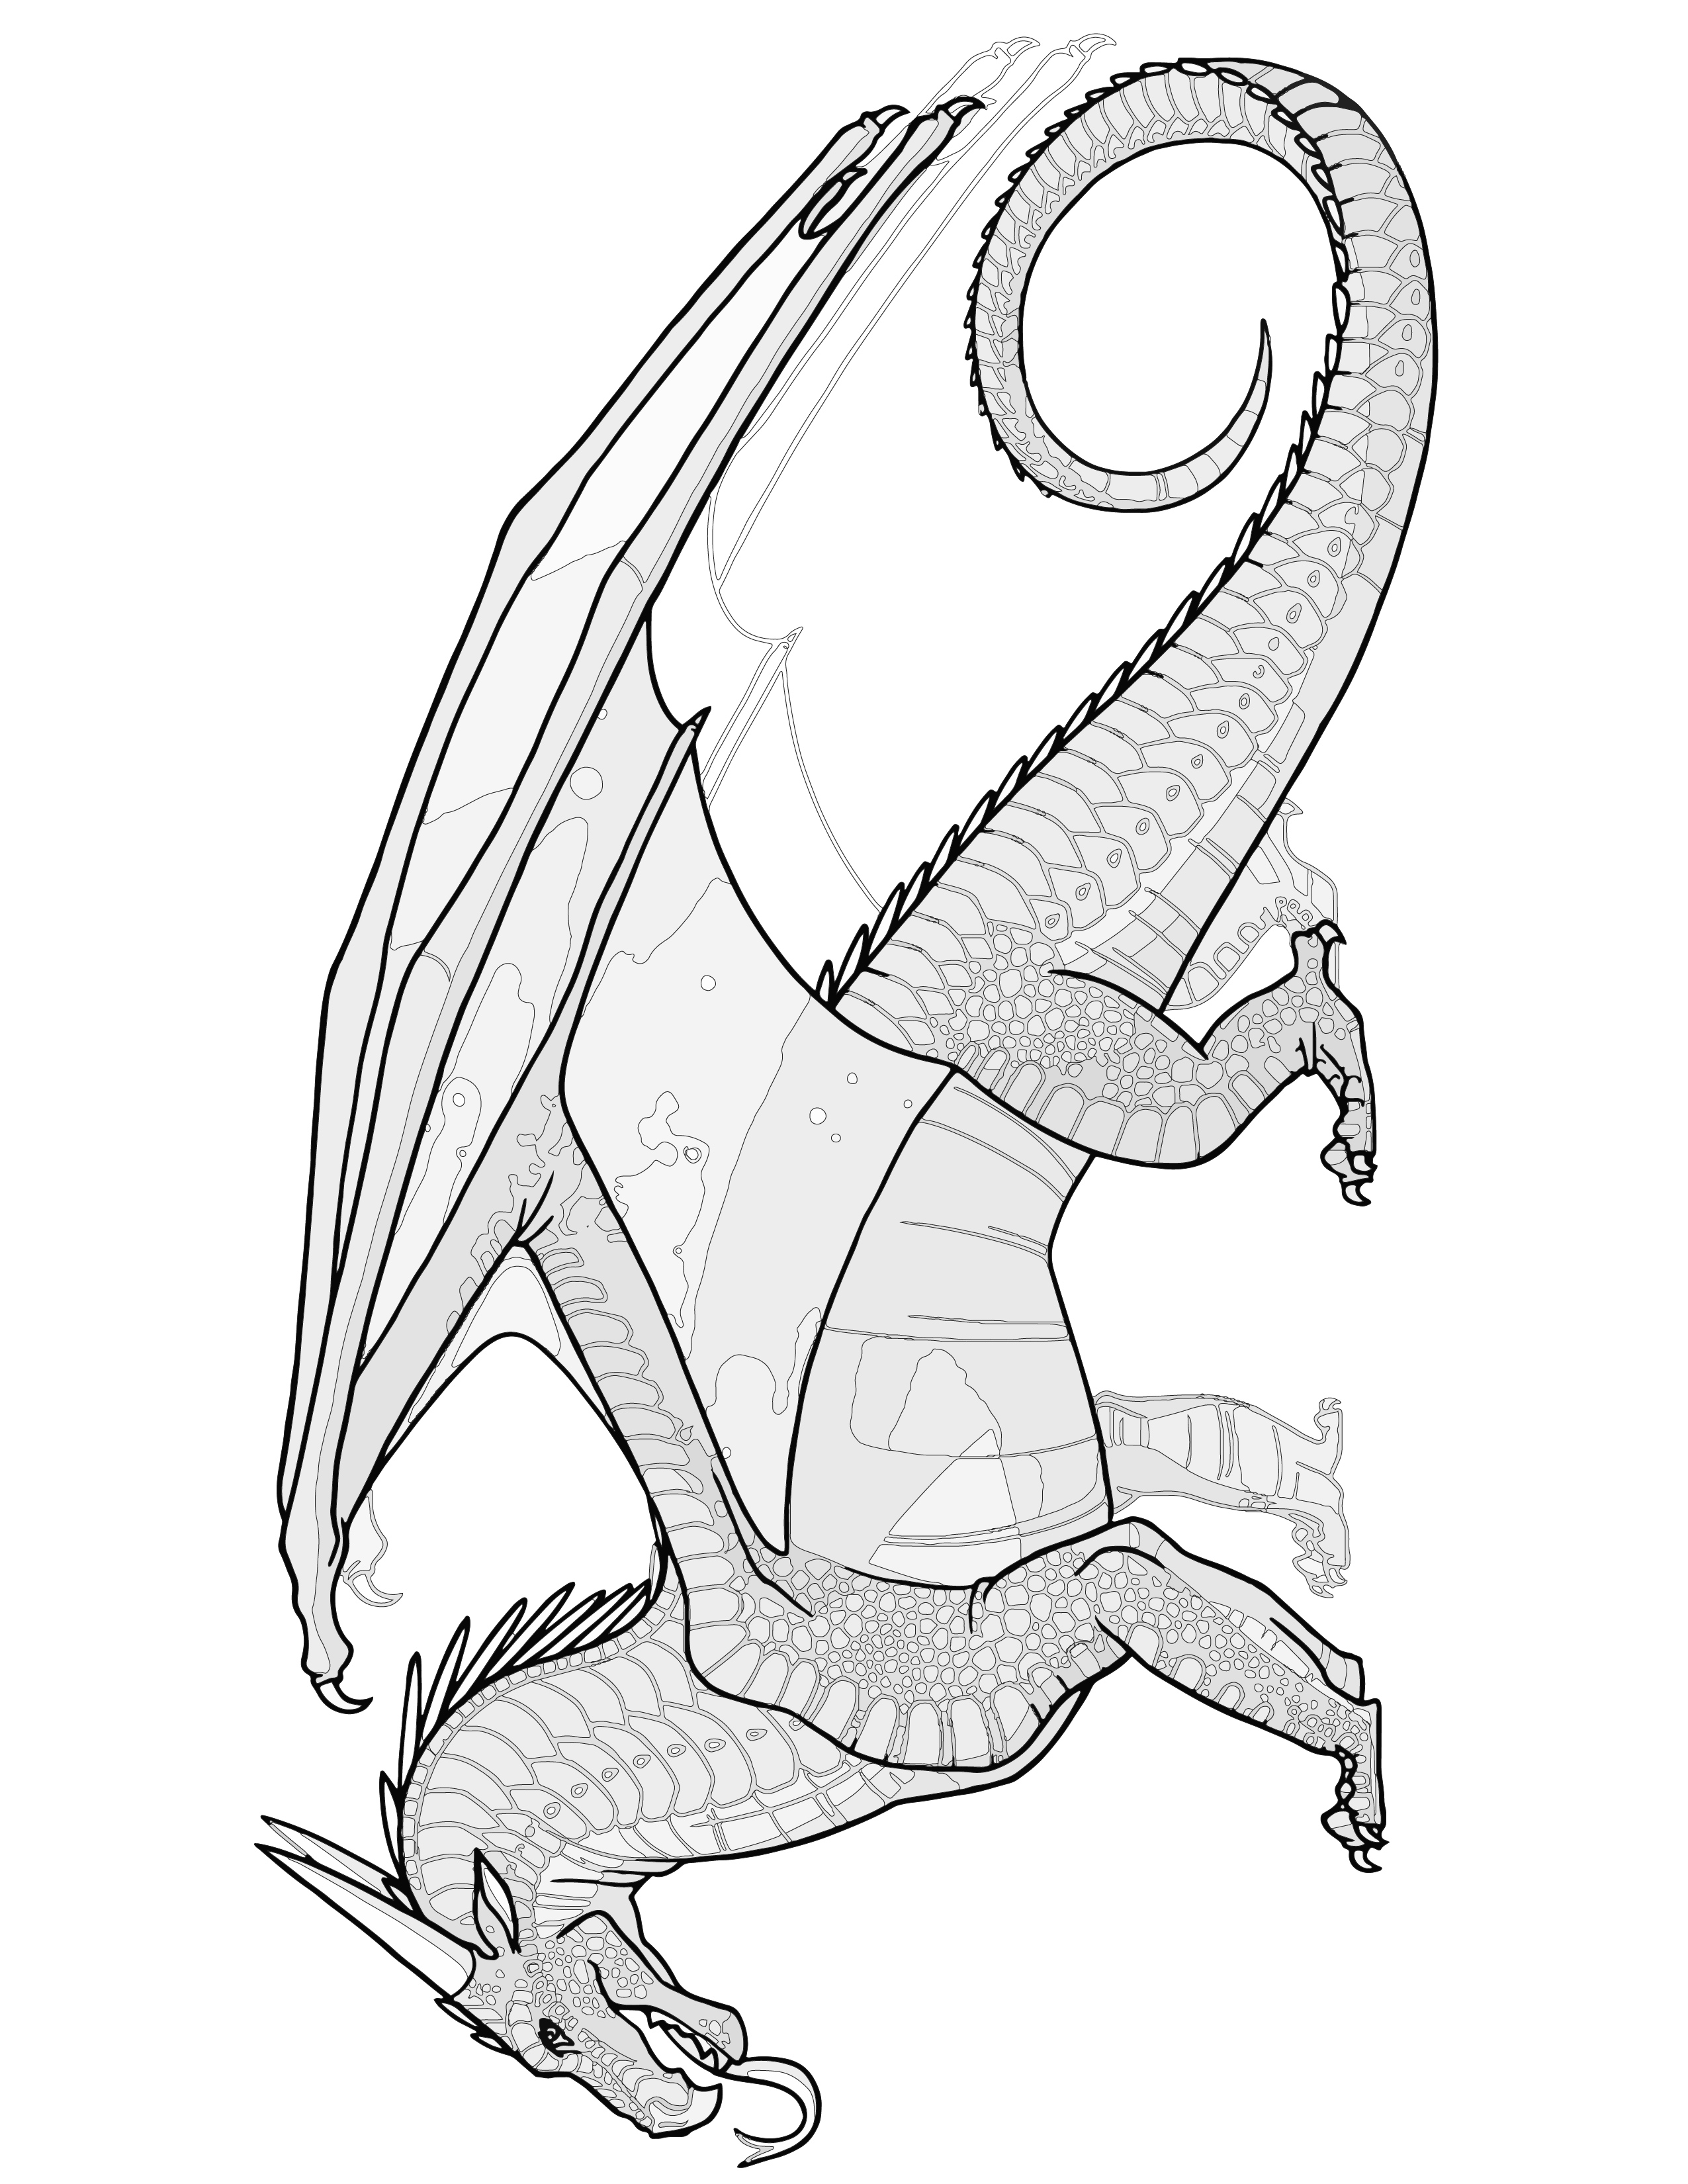 NIGHT Dragon Coloring Page Transparent Wings of Fire Coloring SHEET Pyrrhian Dragon Tribe